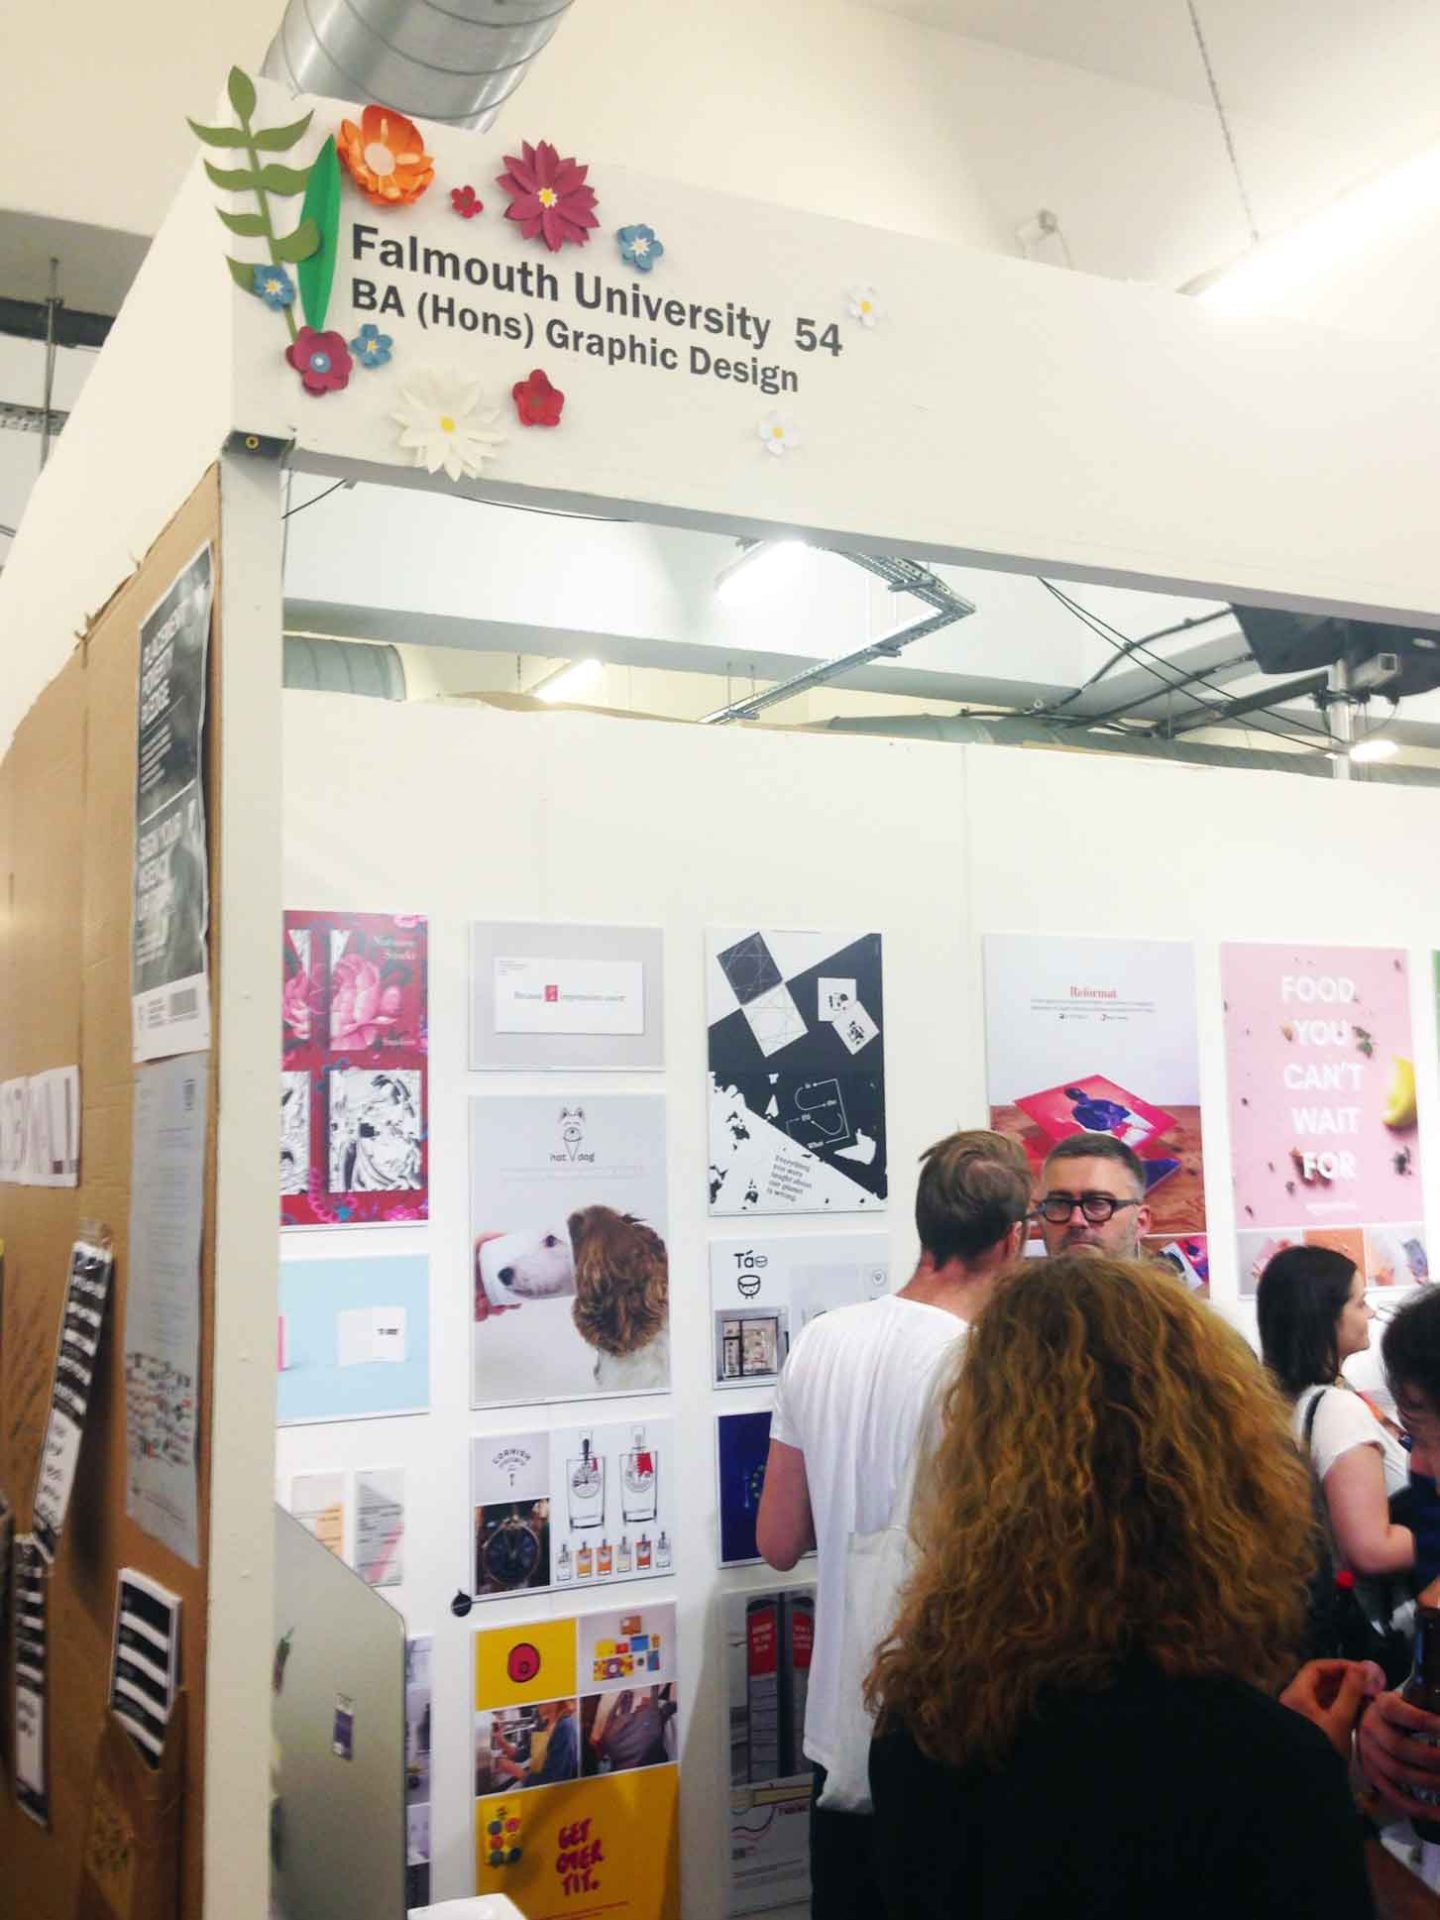 Falmouth University graphic design stand at D&AD New Blood festival 2017